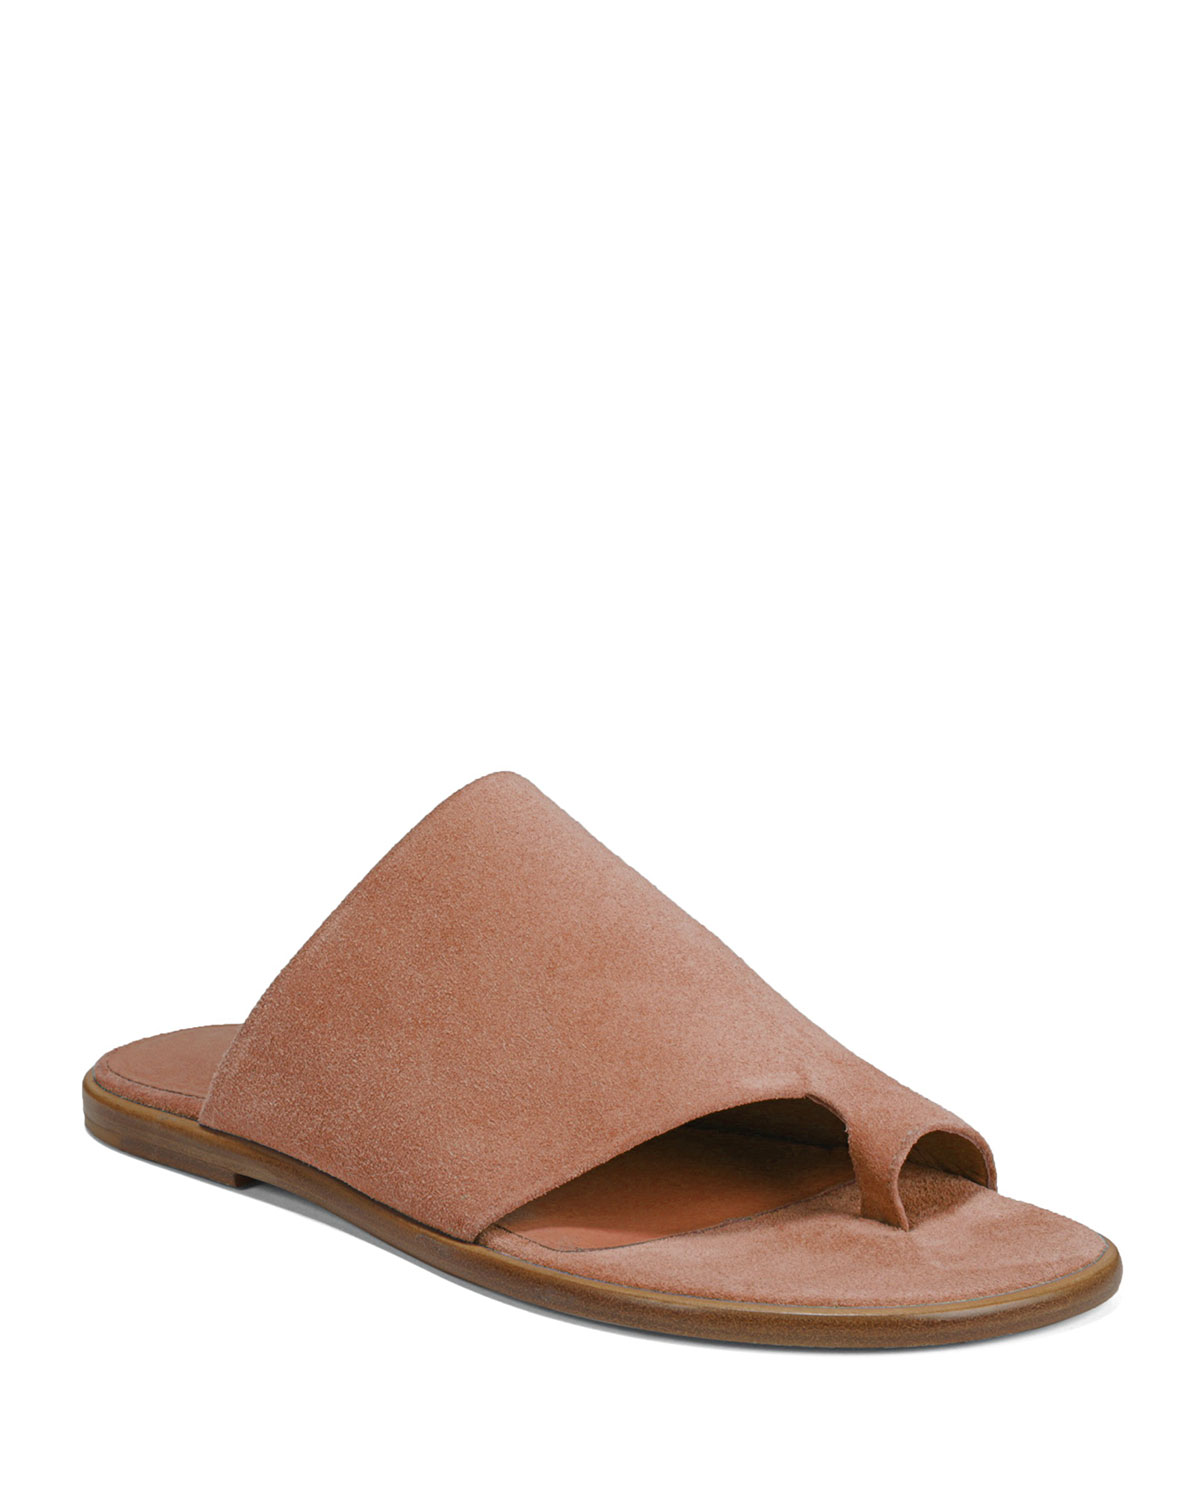 Edris Flat Sport Suede Slide Sandals by Vince